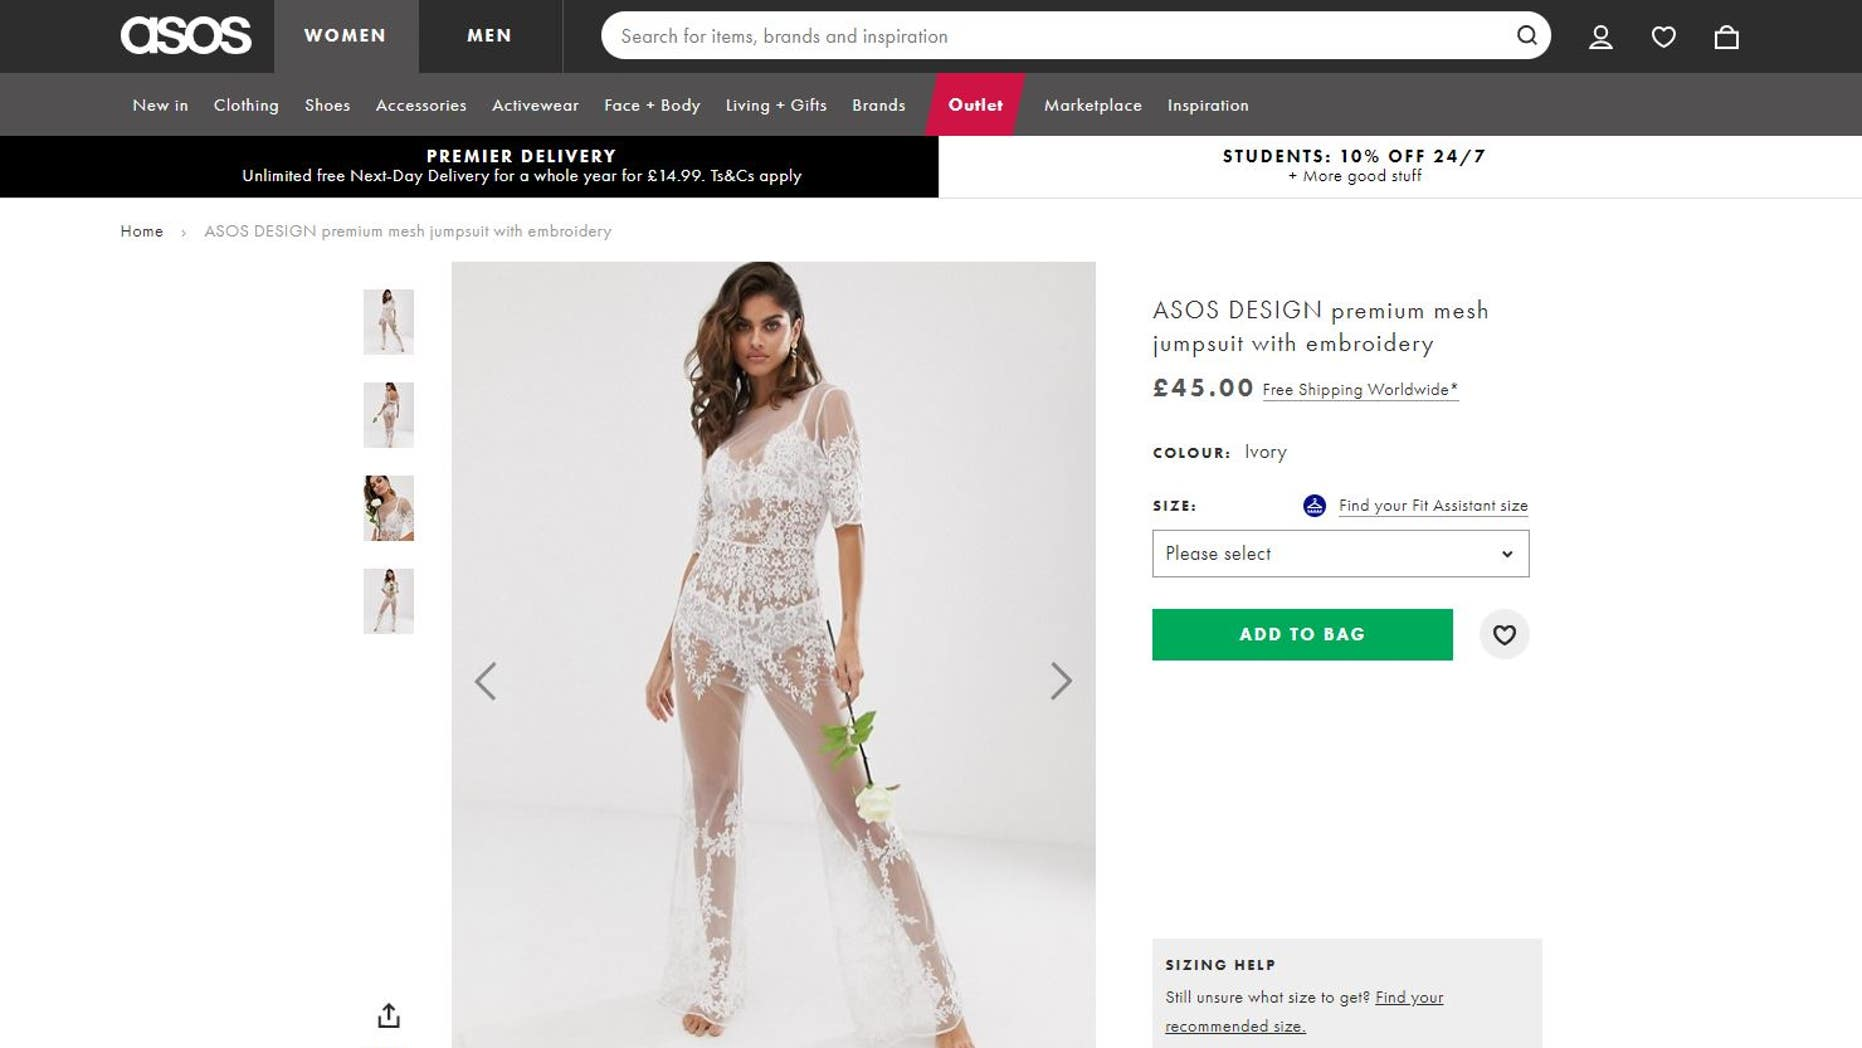 Pictures of the jumpsuit were posted to theThat's It, I'm Wedding Shaming page, and has racked up hundreds of comments.